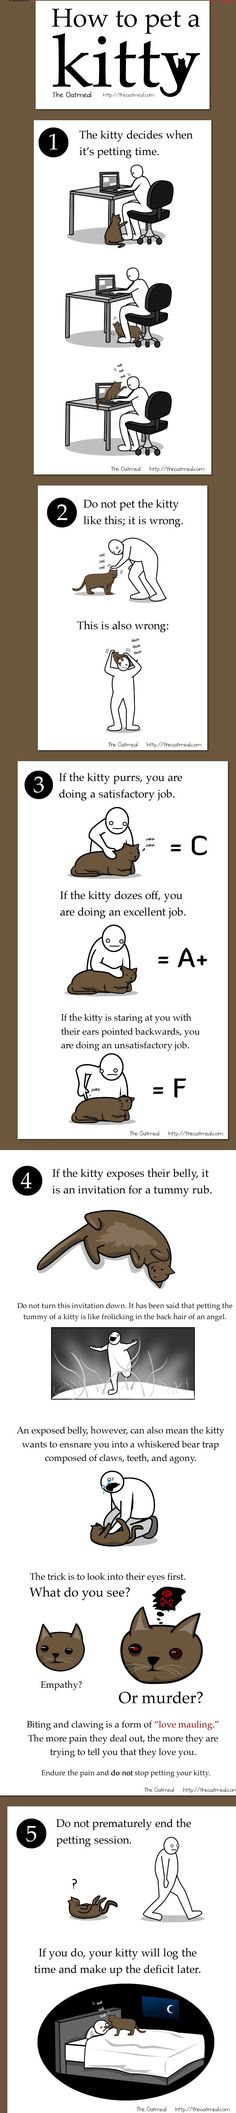 Lol! so true! :) How to pet a kitty by Matthew Inman of the Oatmeal, Funny and insightful comic for cat lovers.